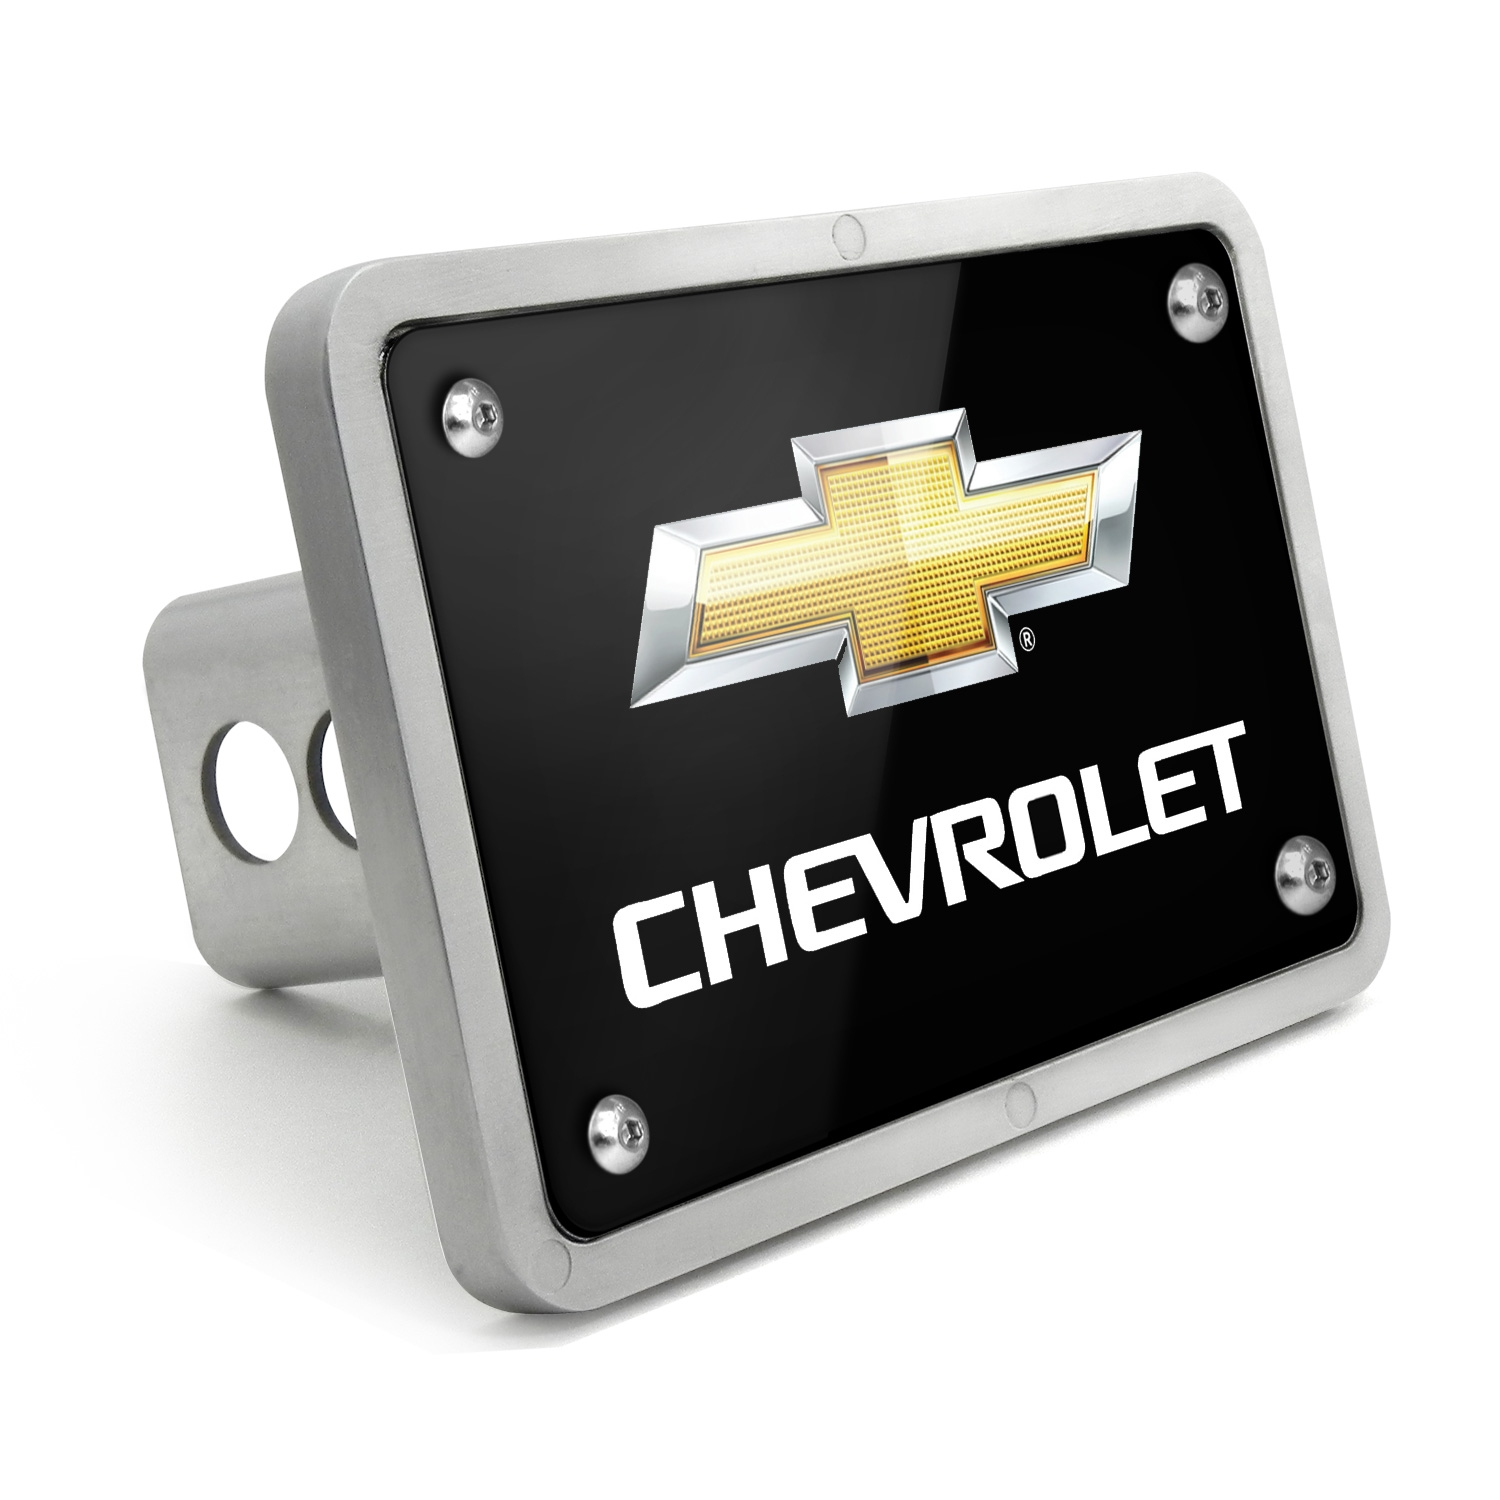 Chevrolet Logo 2011 UV Graphic Black Billet Aluminum 2 inch Tow Hitch Cover